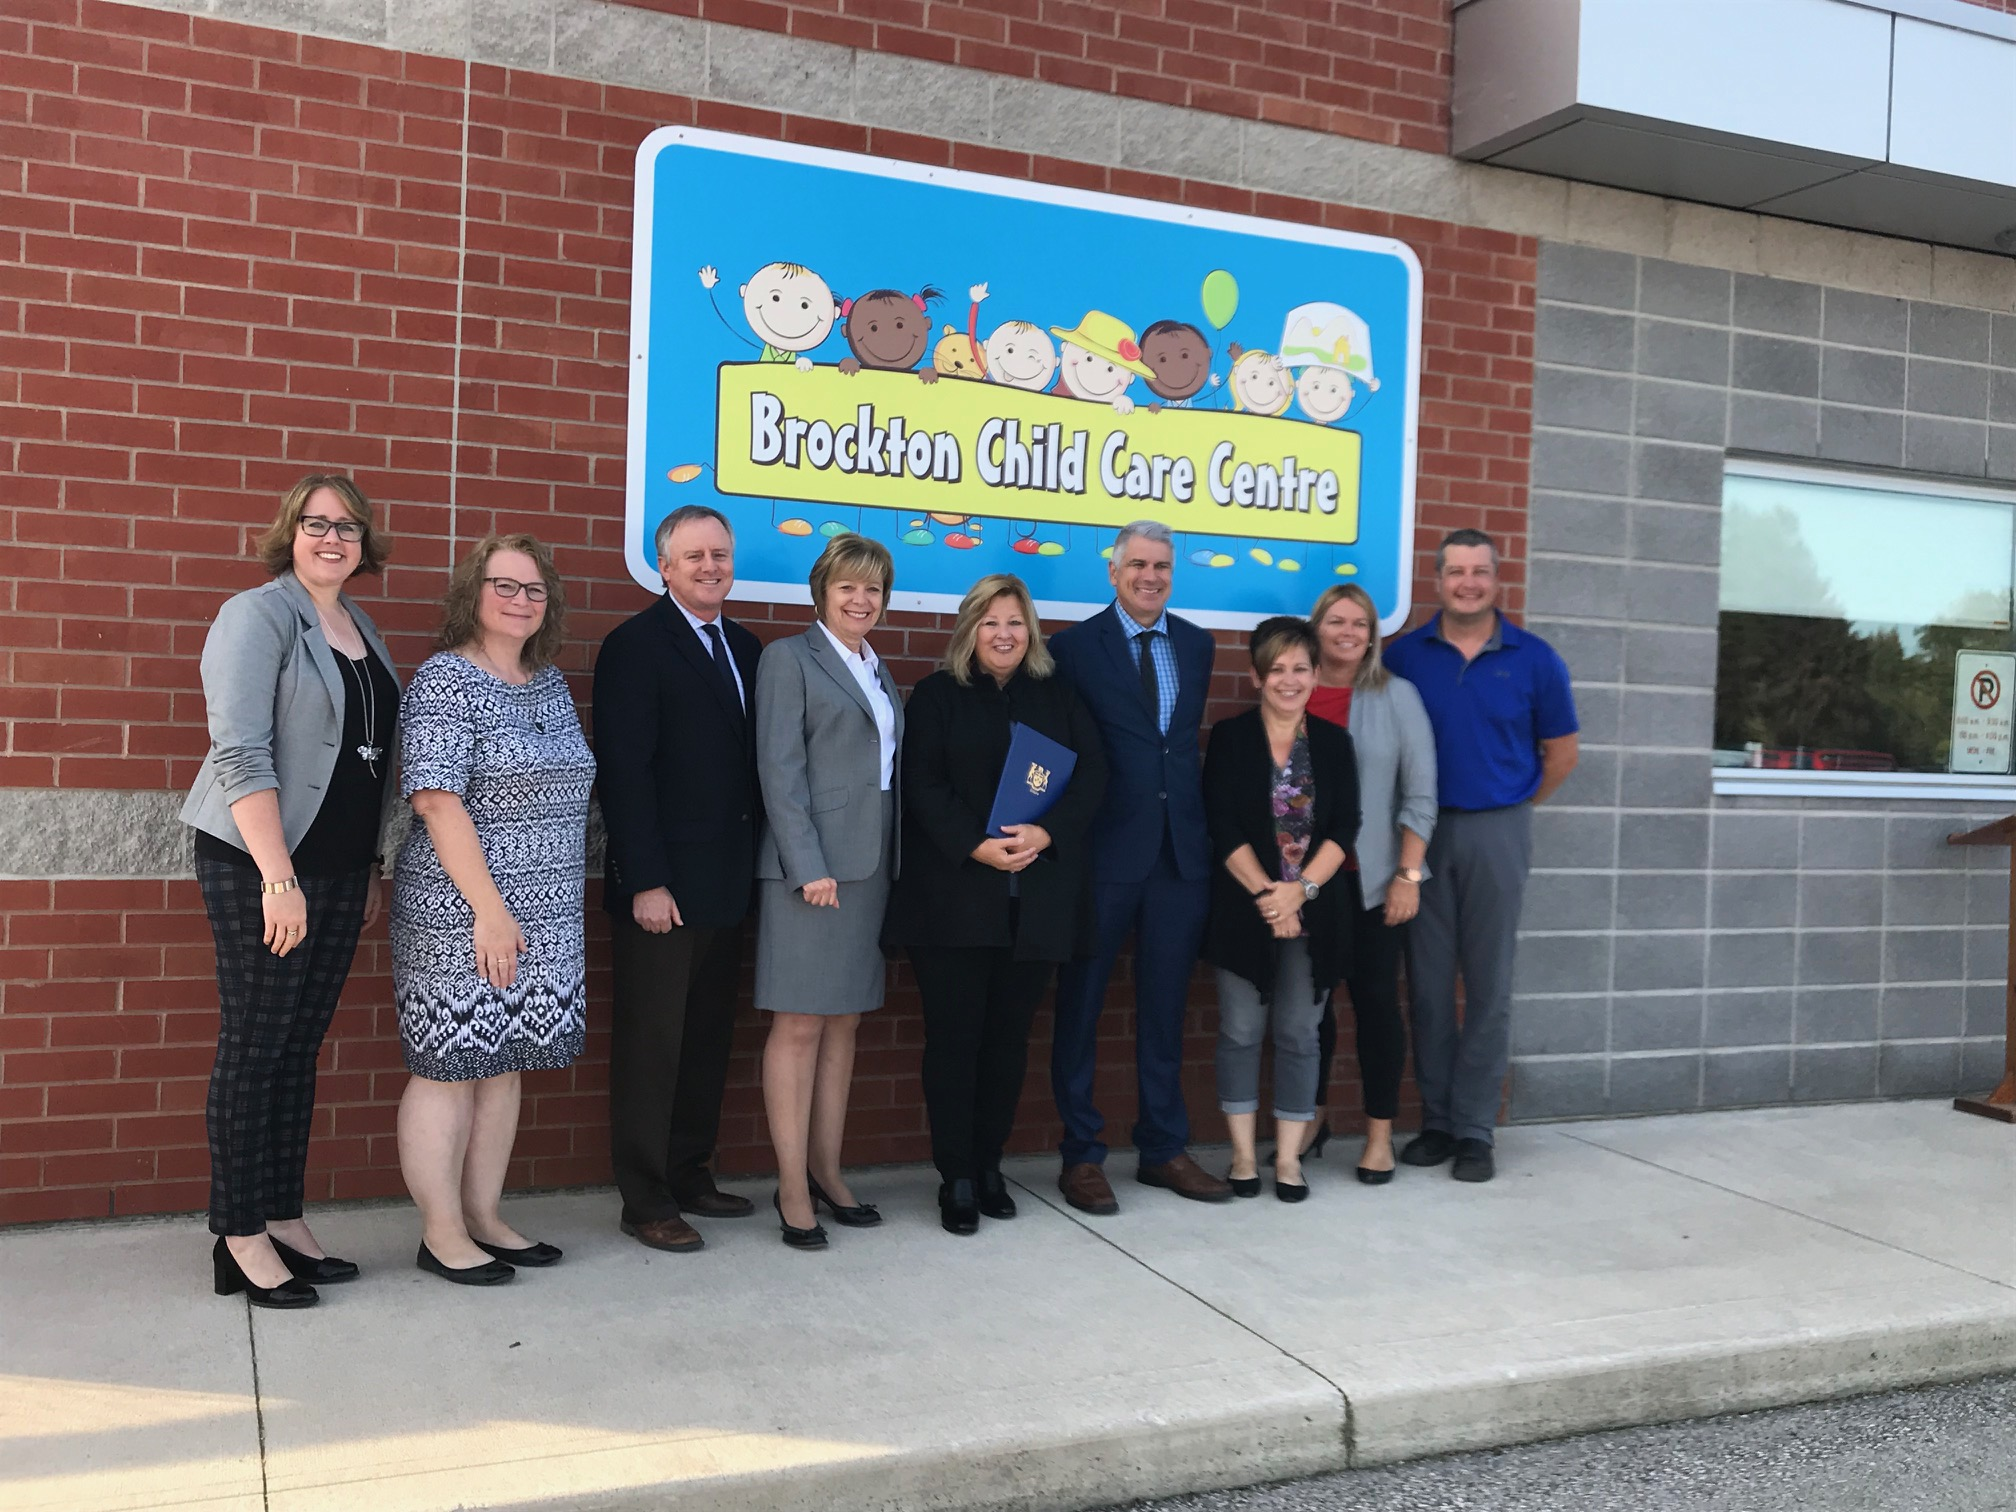 Child Care Centre Expansion Announcement - September 2019